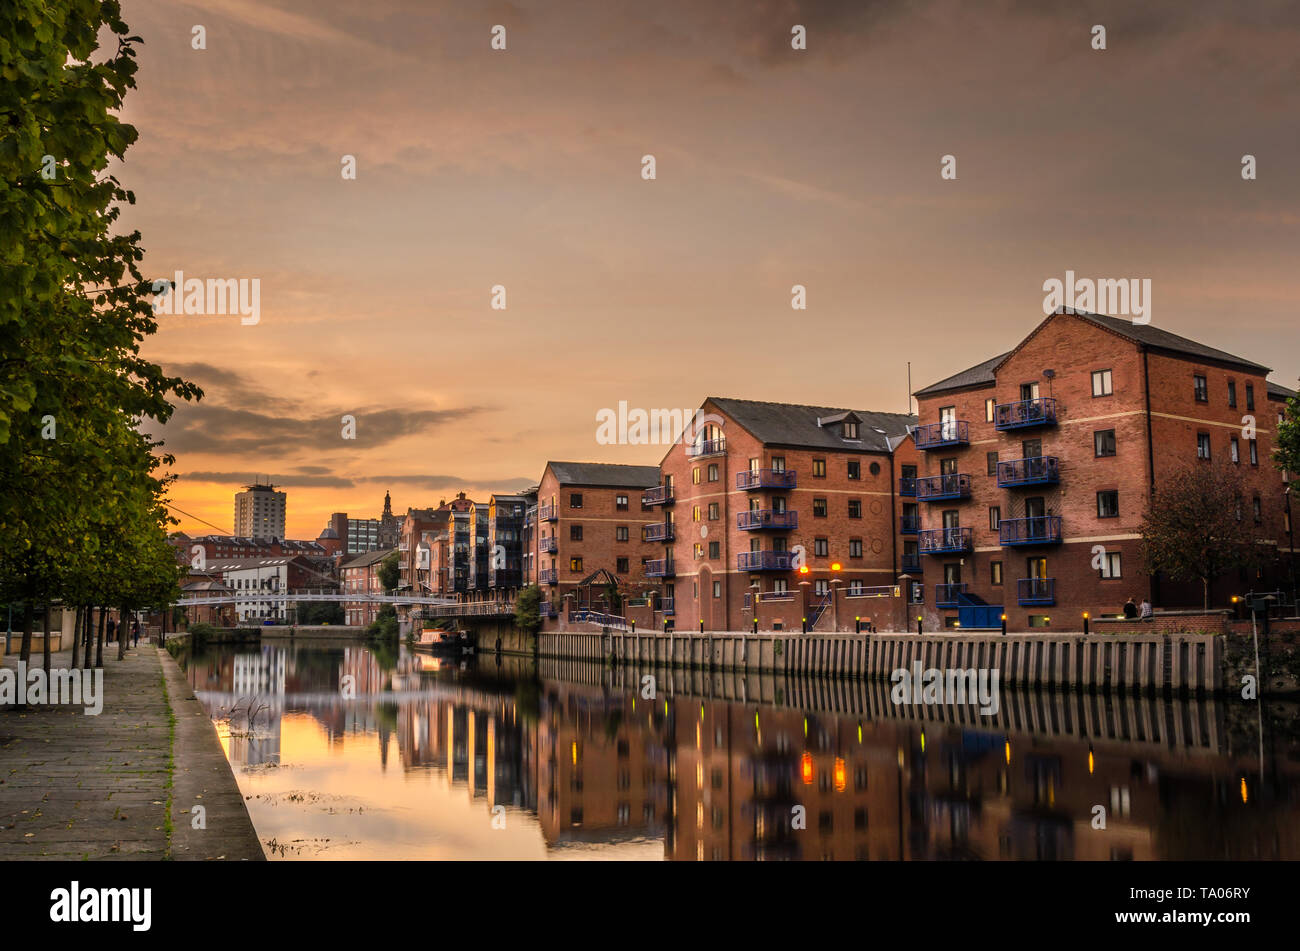 Brick apartment buildings and renovated warehouses along the river Aire in Leeds at Sunset. Reflection in water. Stock Photo